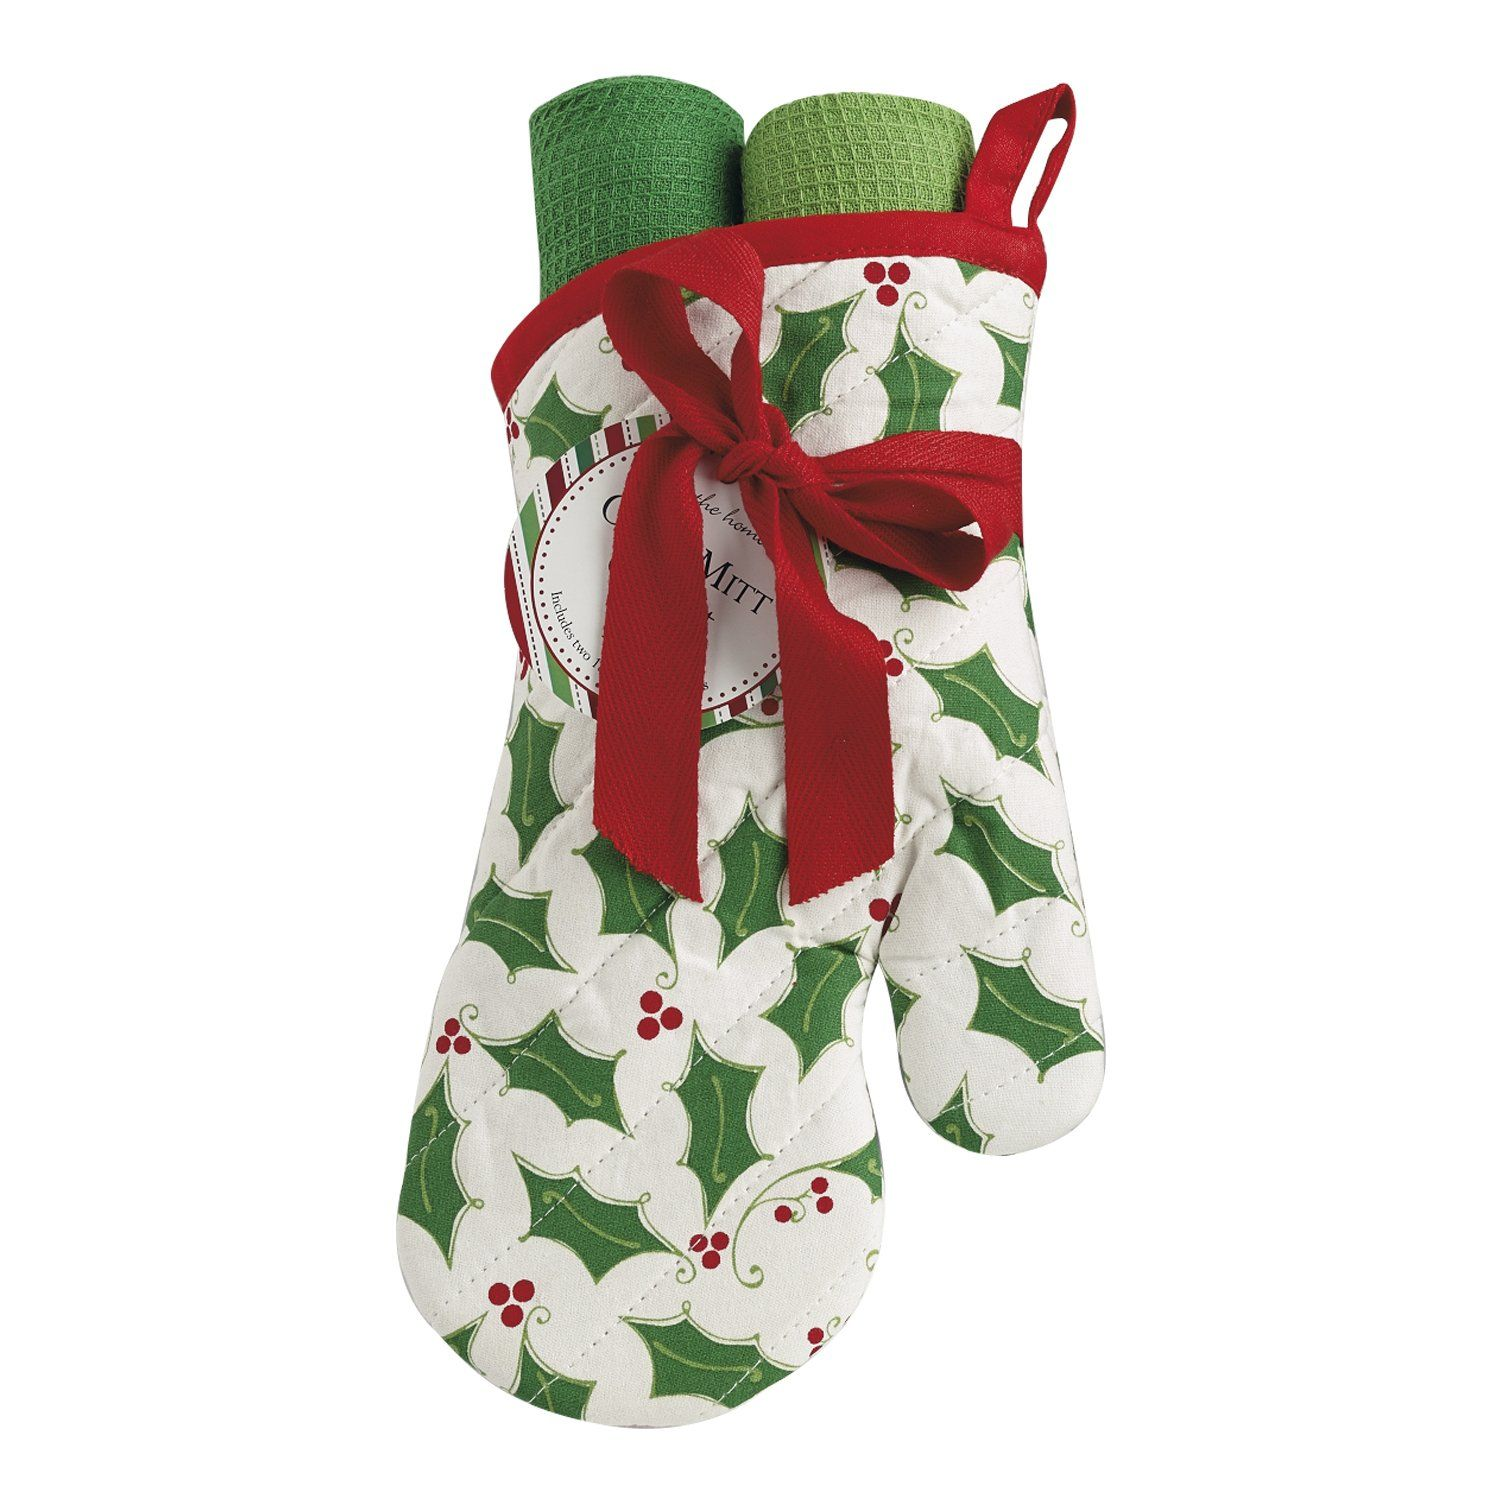 DII Cotton Christmas Holiday Oven Mitt and Dish Towels Gift Set